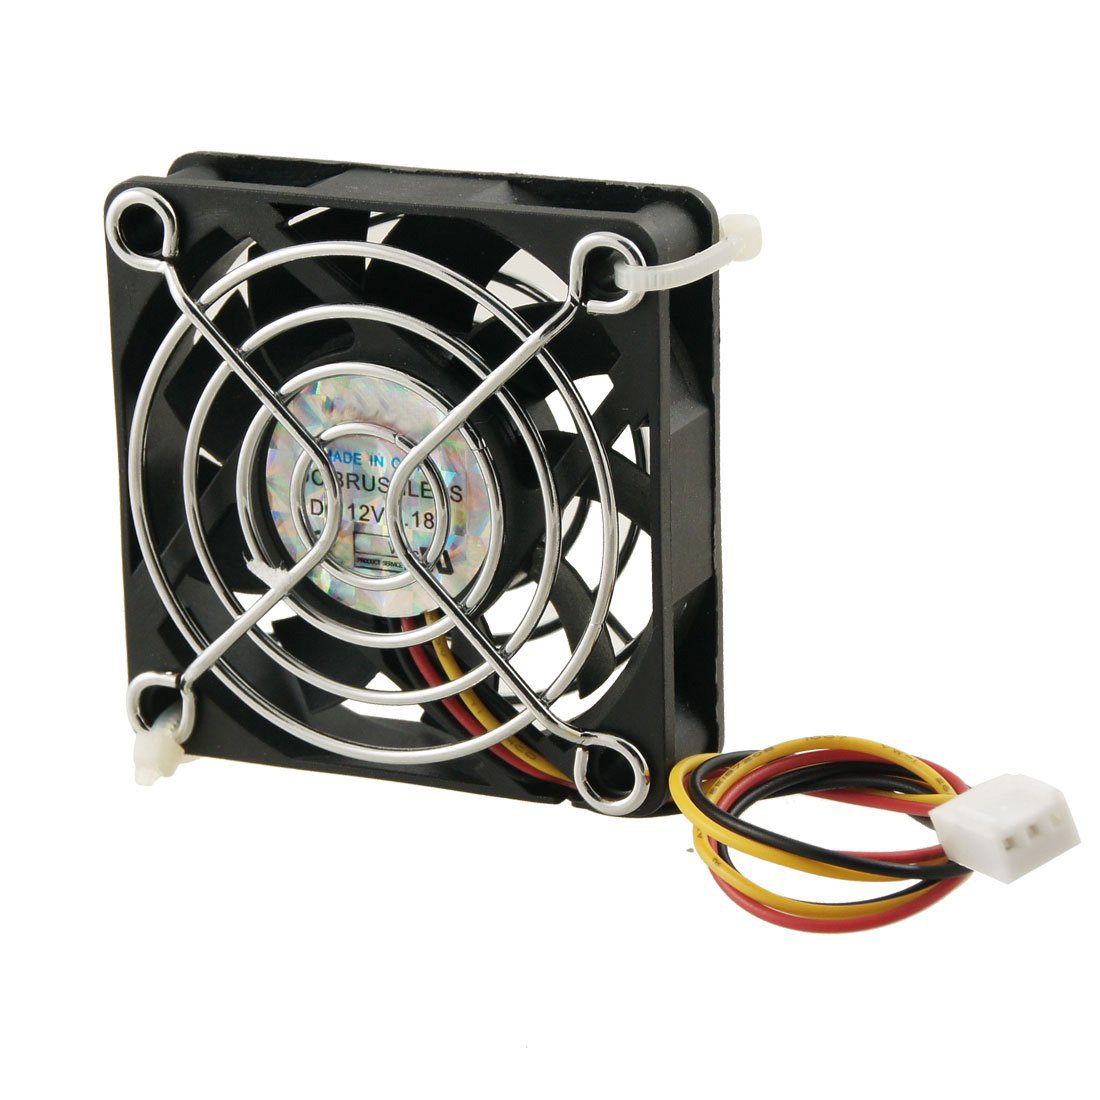 BSBL 60mm x 60mm x 15mm 3 Pins Cooling Fan w Metal Finger Guards шурупы 100 3 3 60 m3 double pass 60 mm